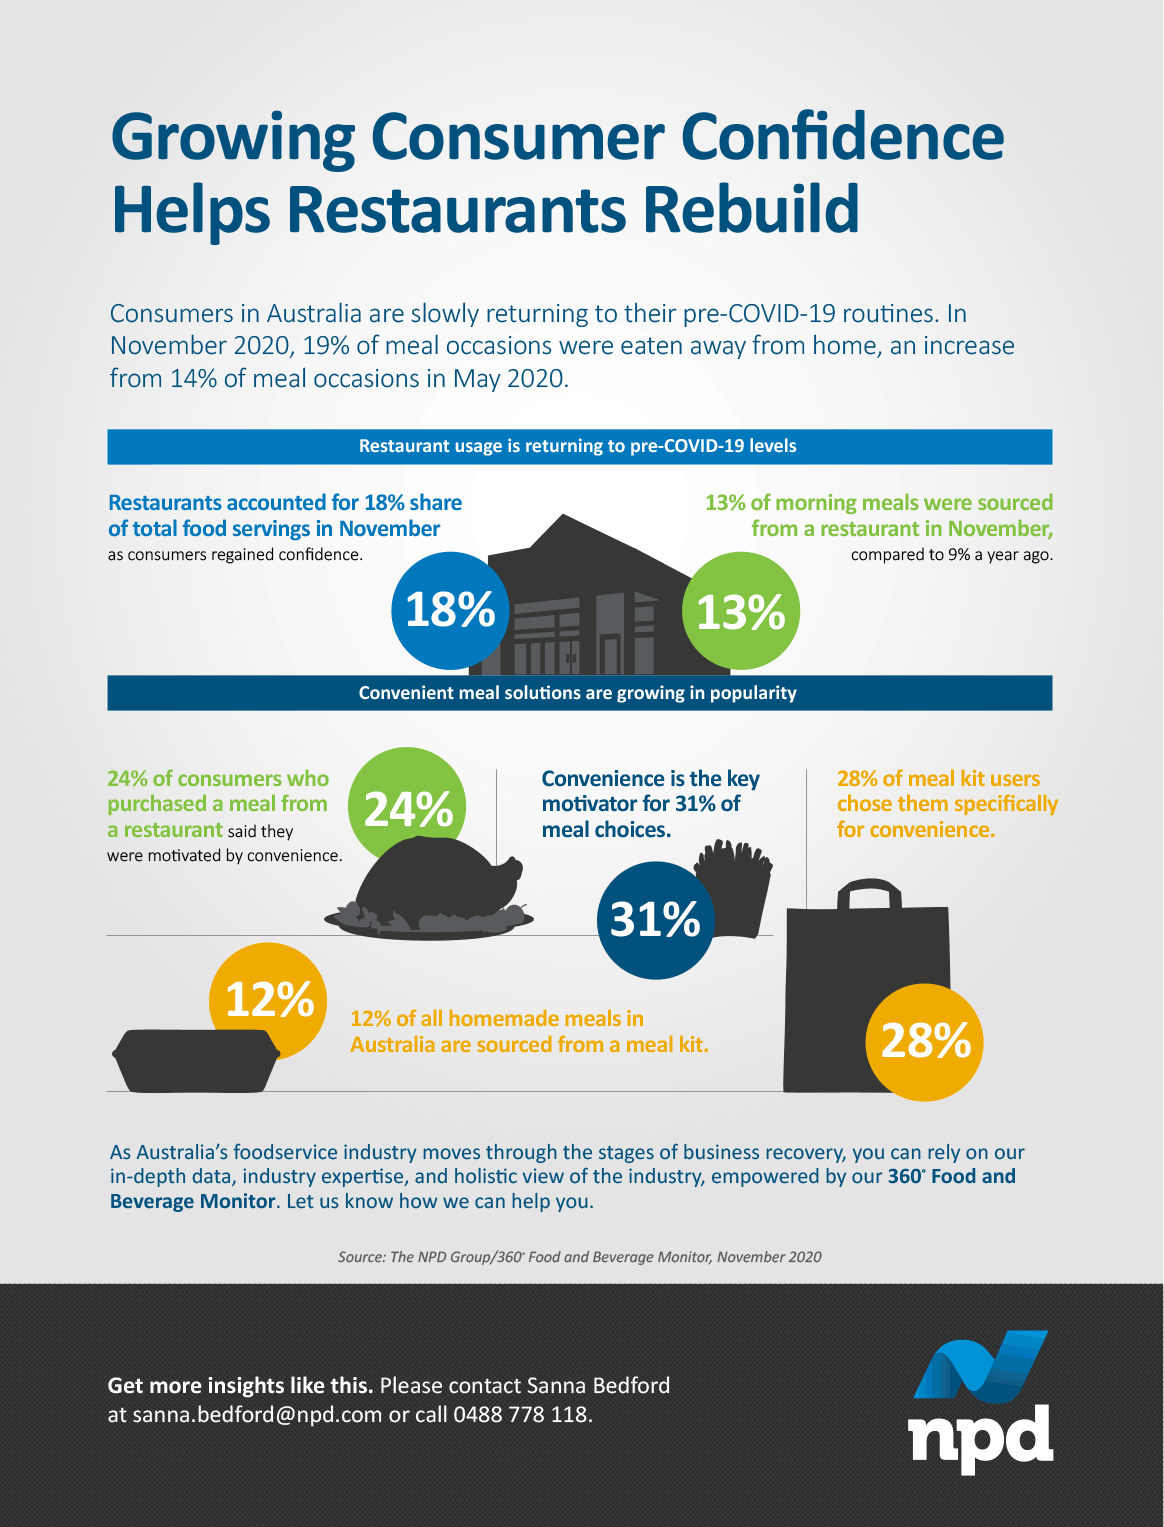 Consumers in Australia are slowly returning to their pre-COVID-19 routines. In November 2020, 19% of meal occasions were eaten away from home, an increase from 14% of meal occasions in May 2020.